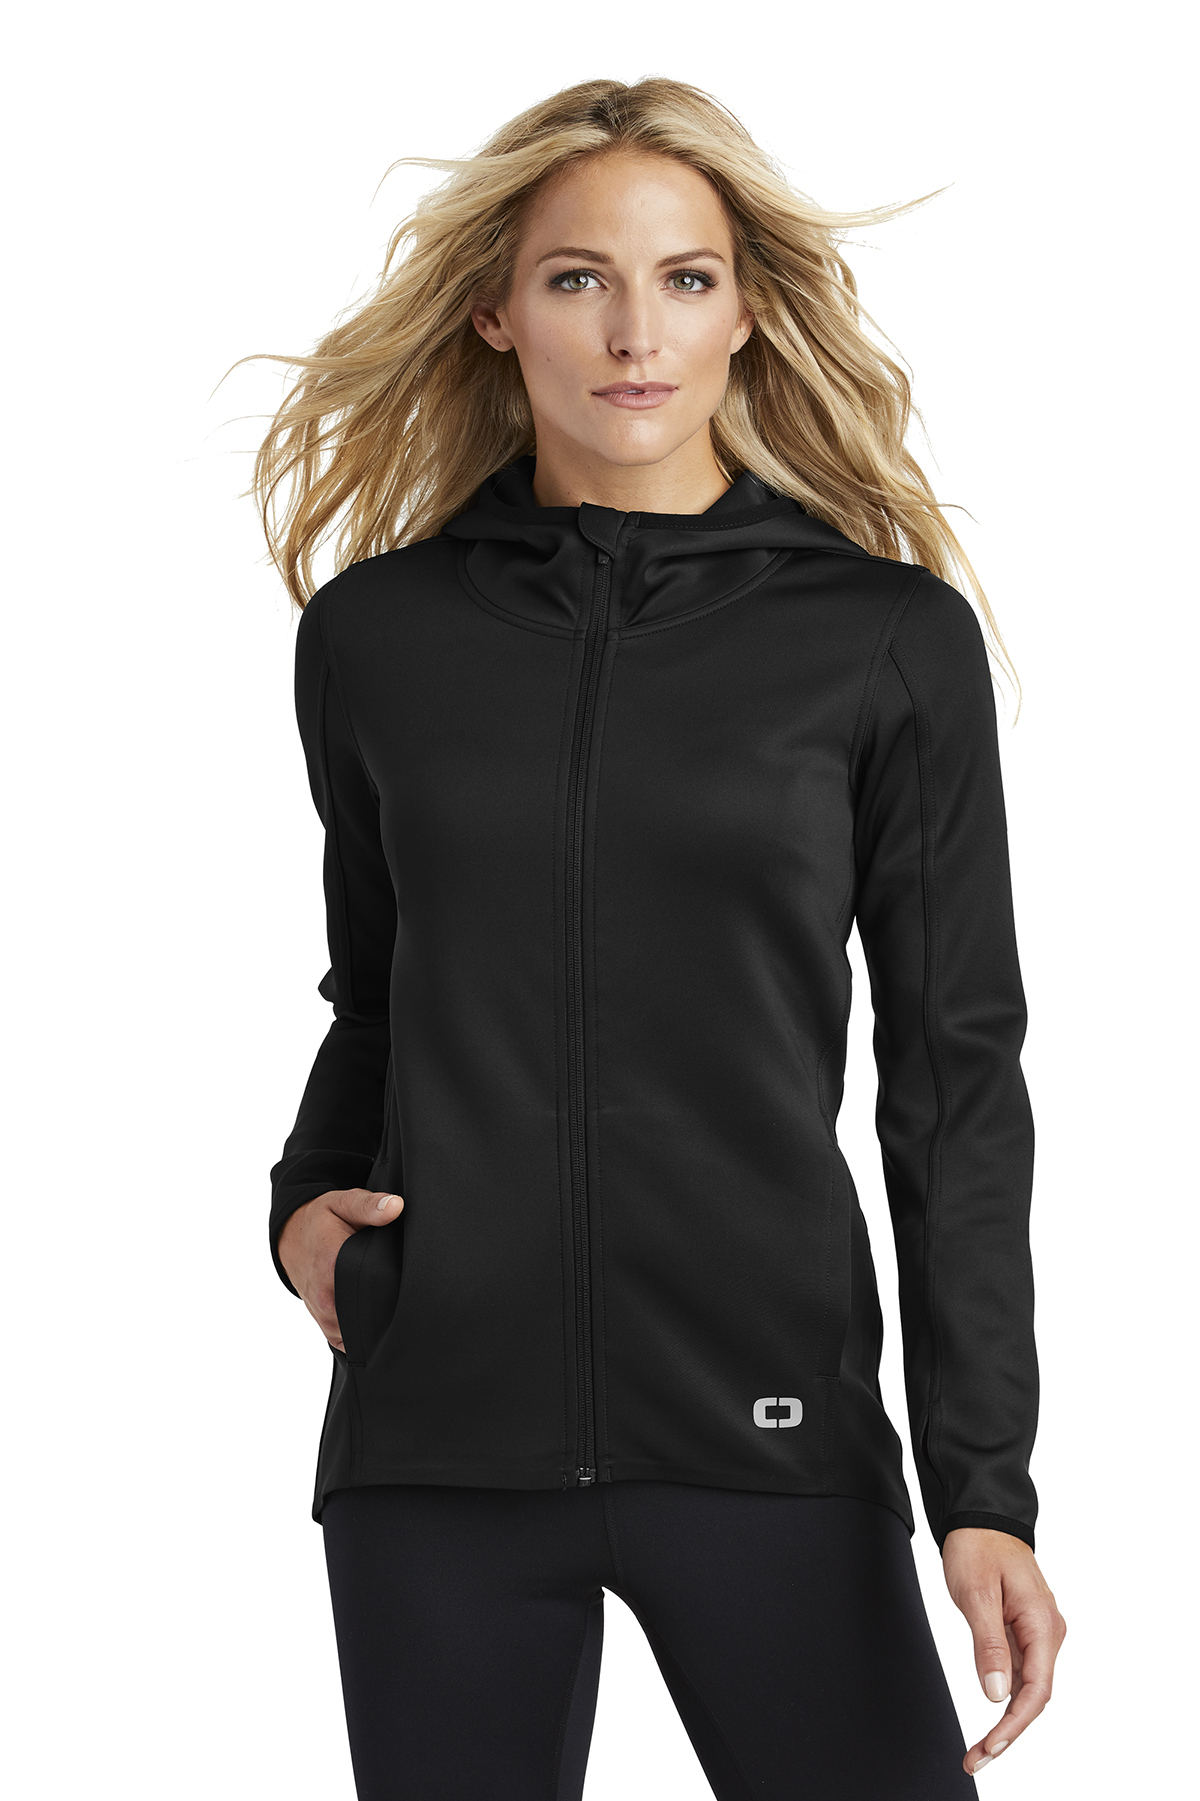 OGIO ENDURANCE LOE728 - Ladies Stealth Full-Zip Jacket